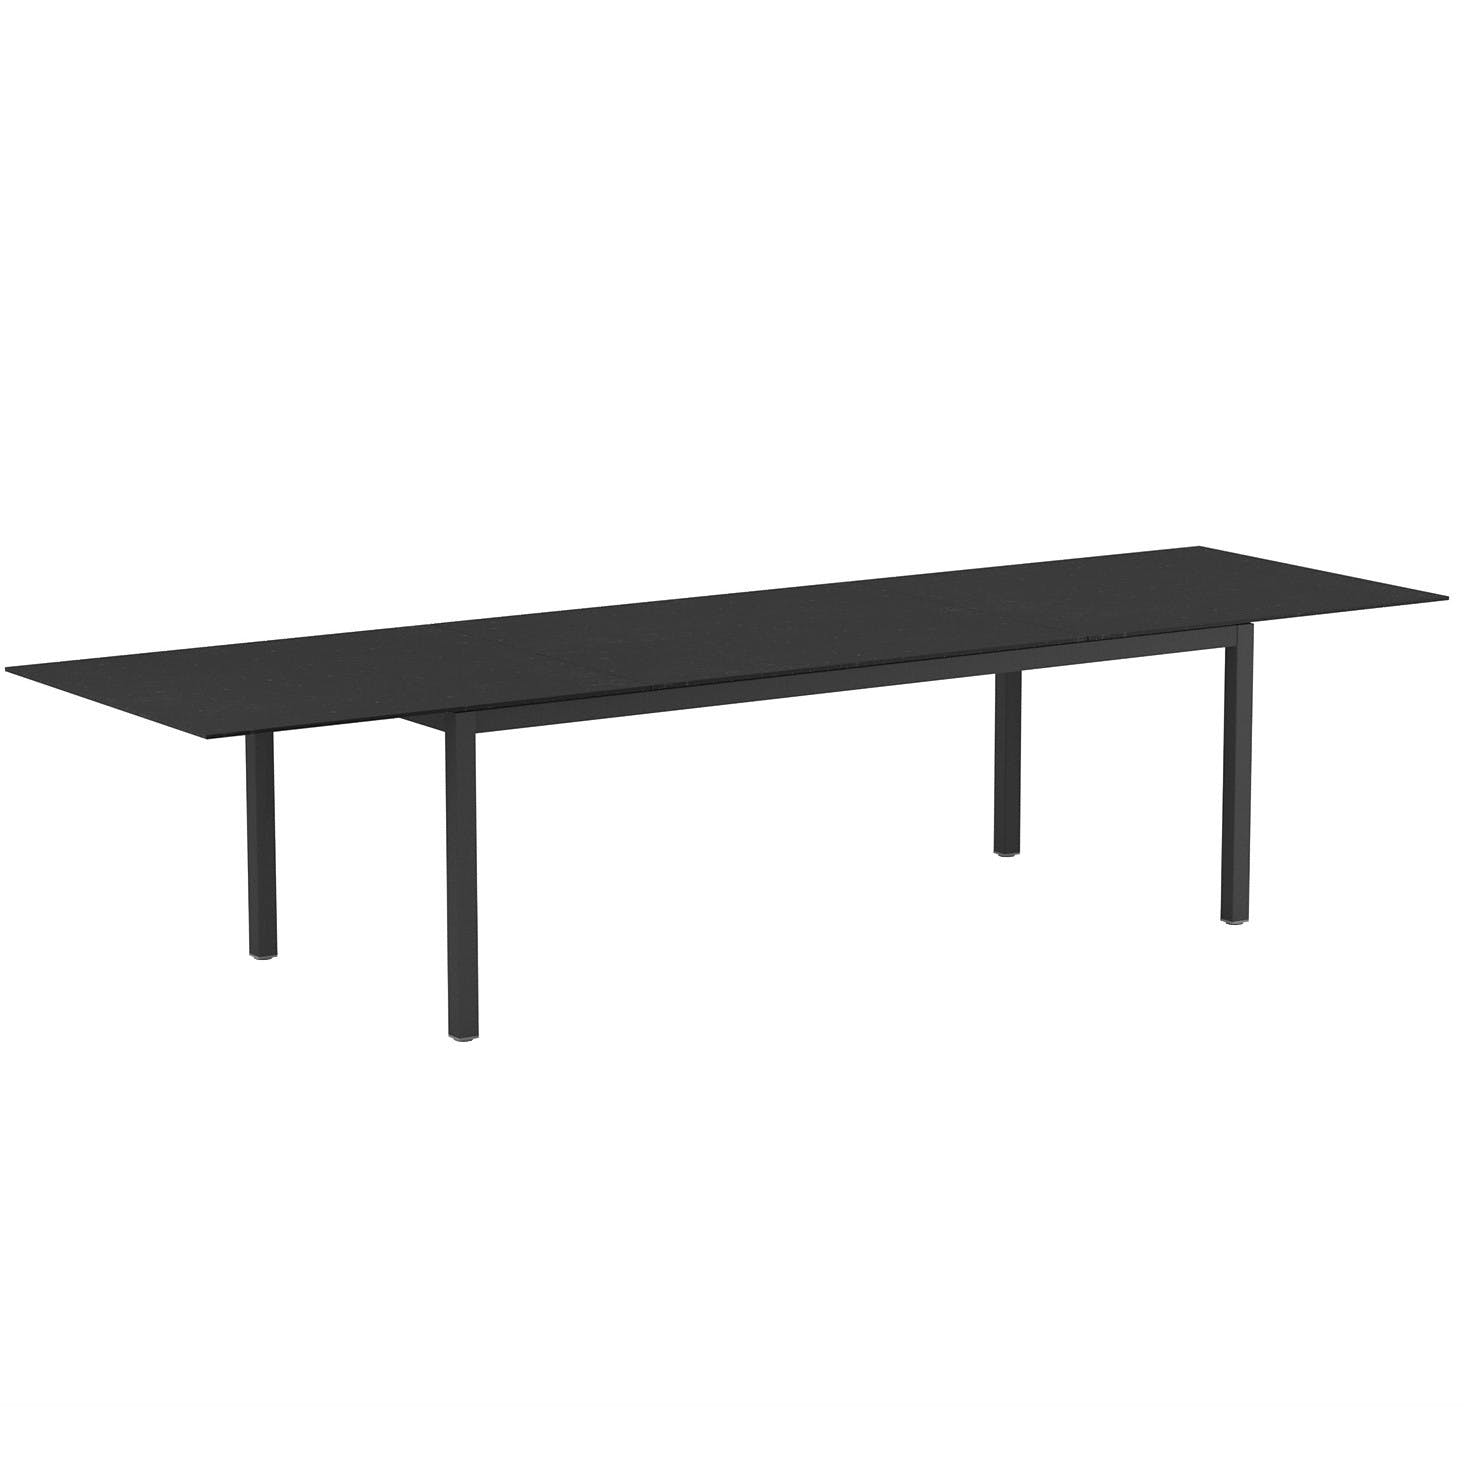 Royal Botania Taboela Extendable Table Black Haute Living